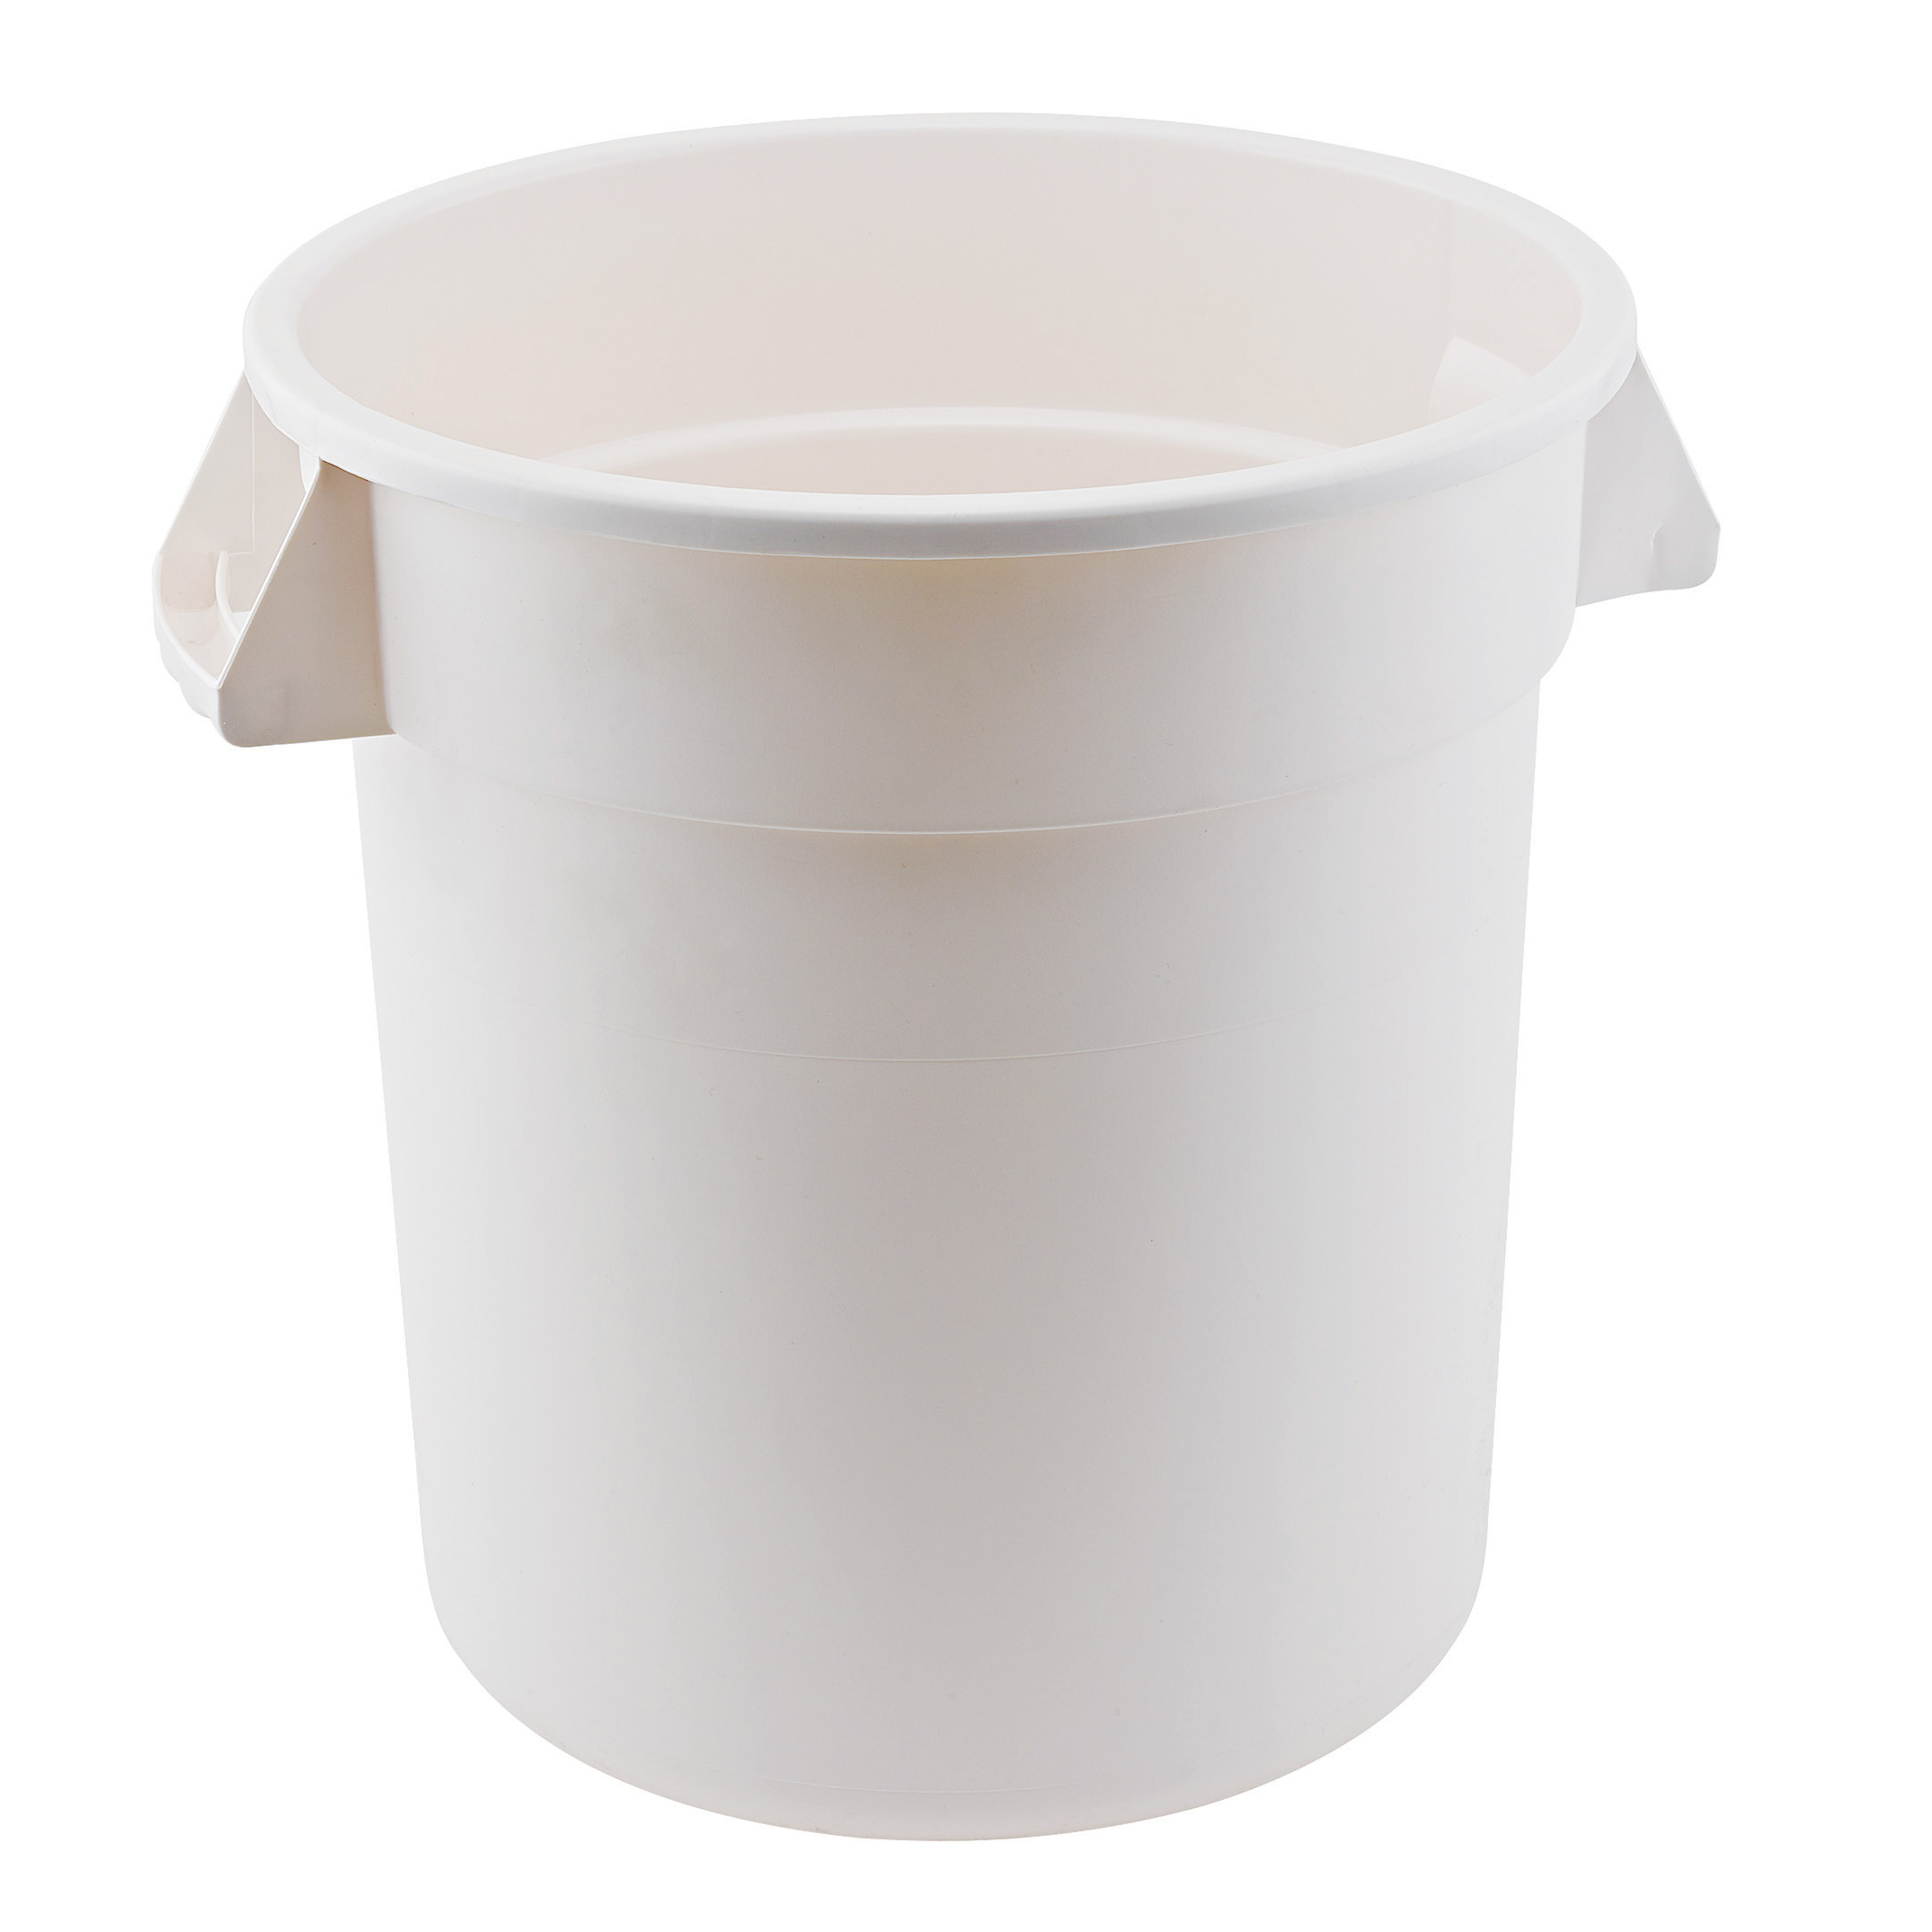 Winco FCW-32 trash can / container, commercial